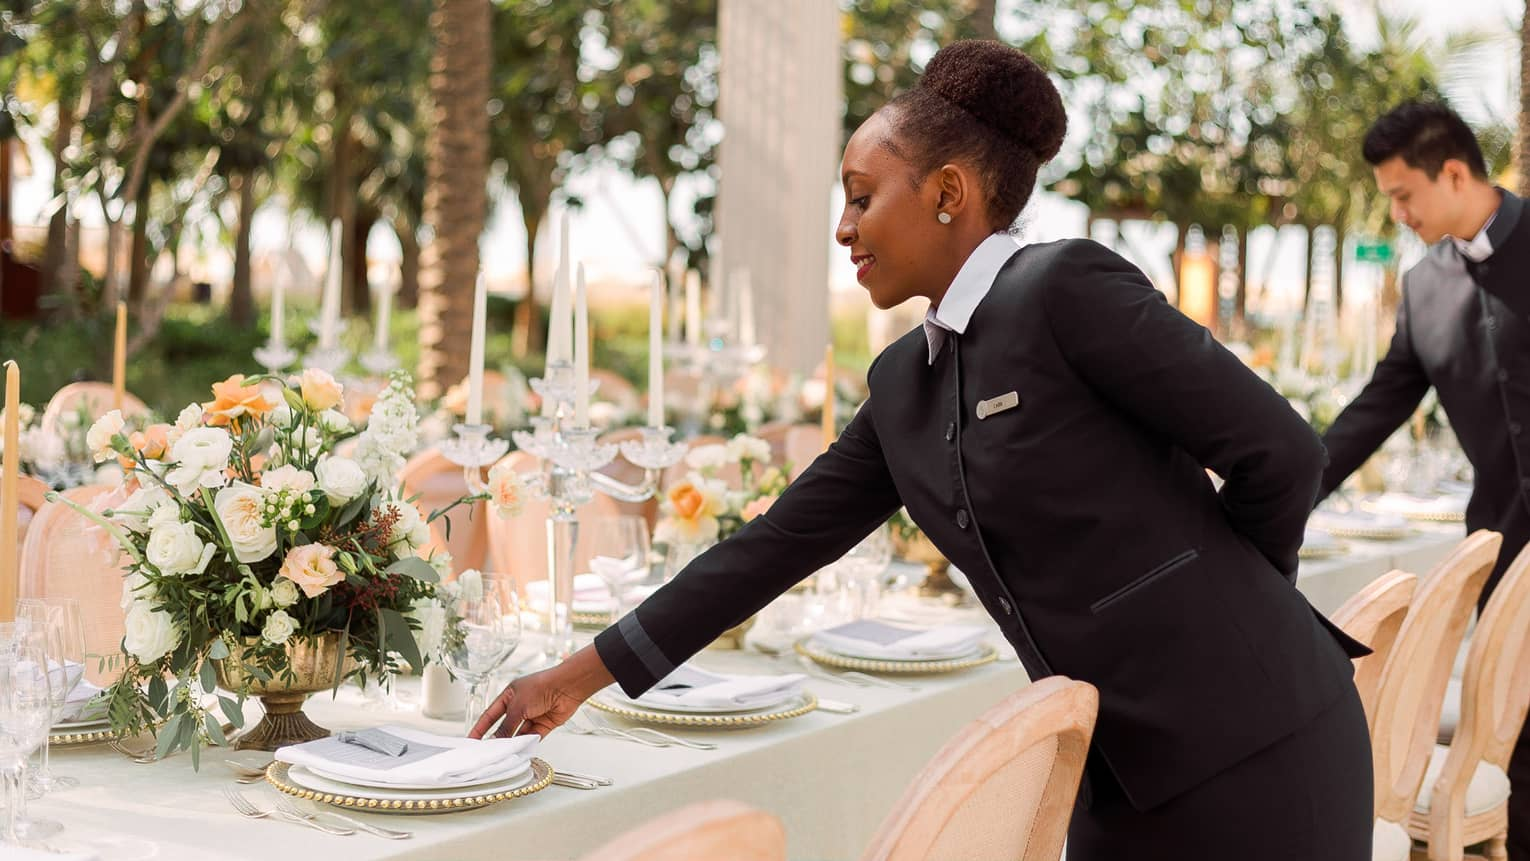 Hotel staff set plates on long banquet table at outdoor wedding reception